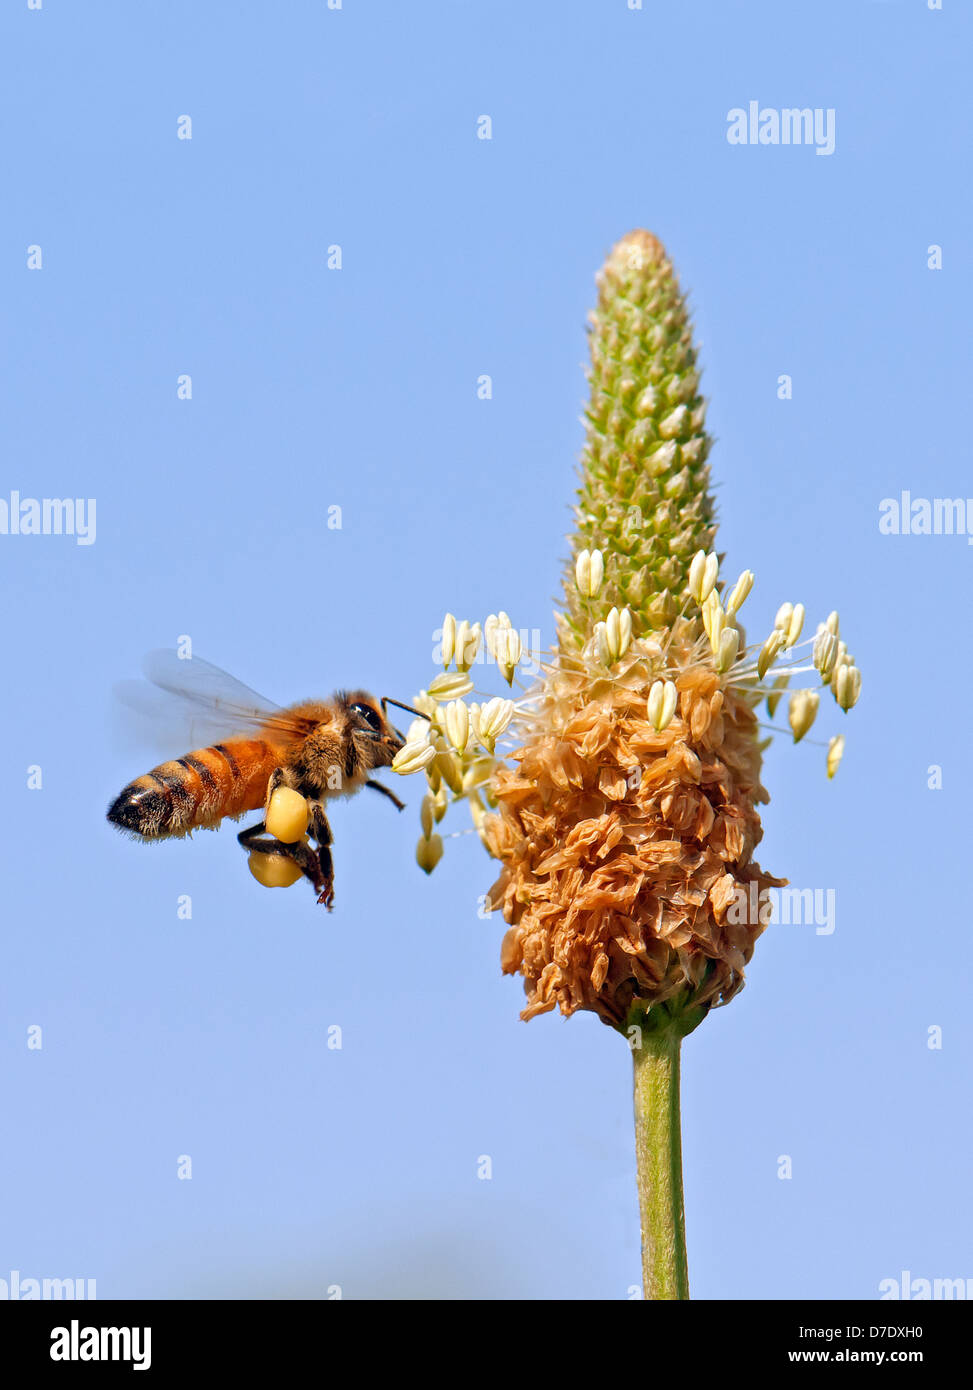 Honey bee, Pollinating and collect pollen - Stock Image